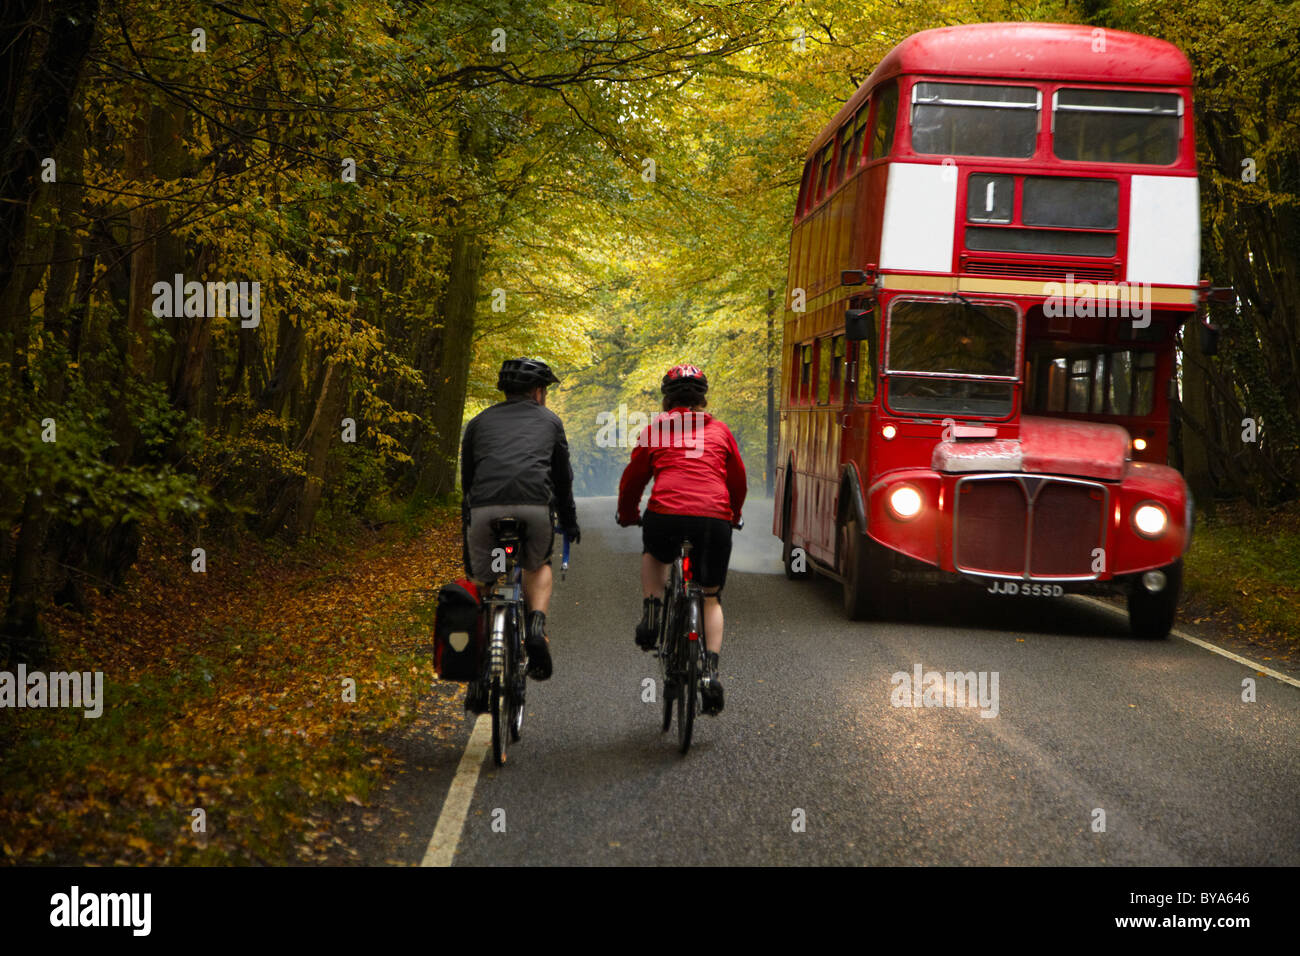 Couple cycling next to bus in country - Stock Image